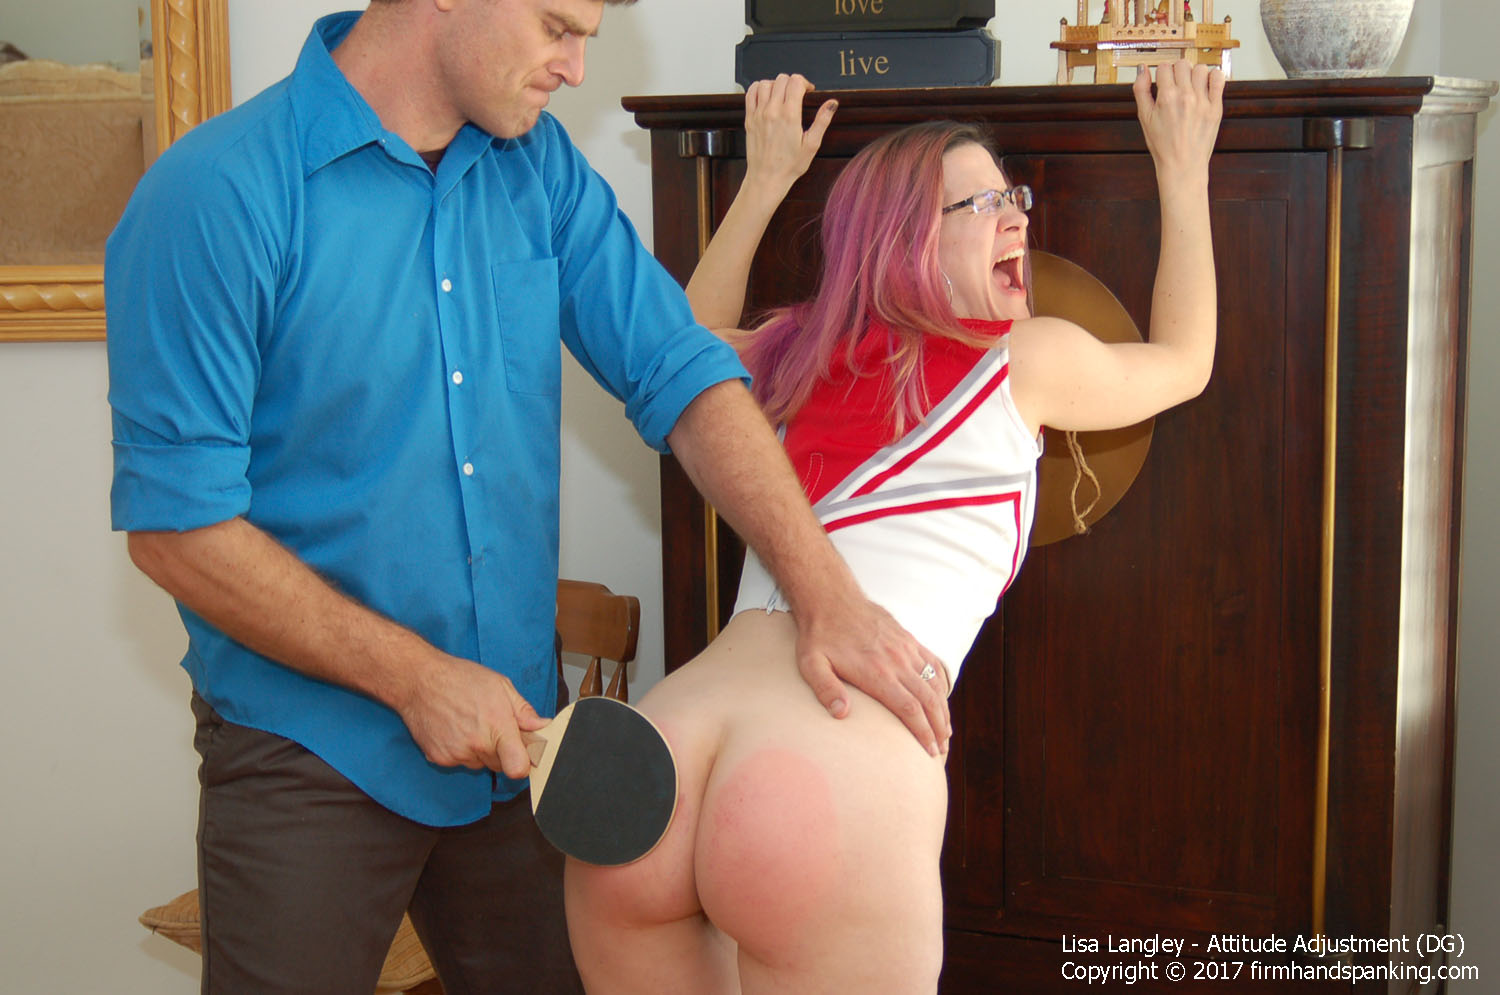 Free live streaming spank can